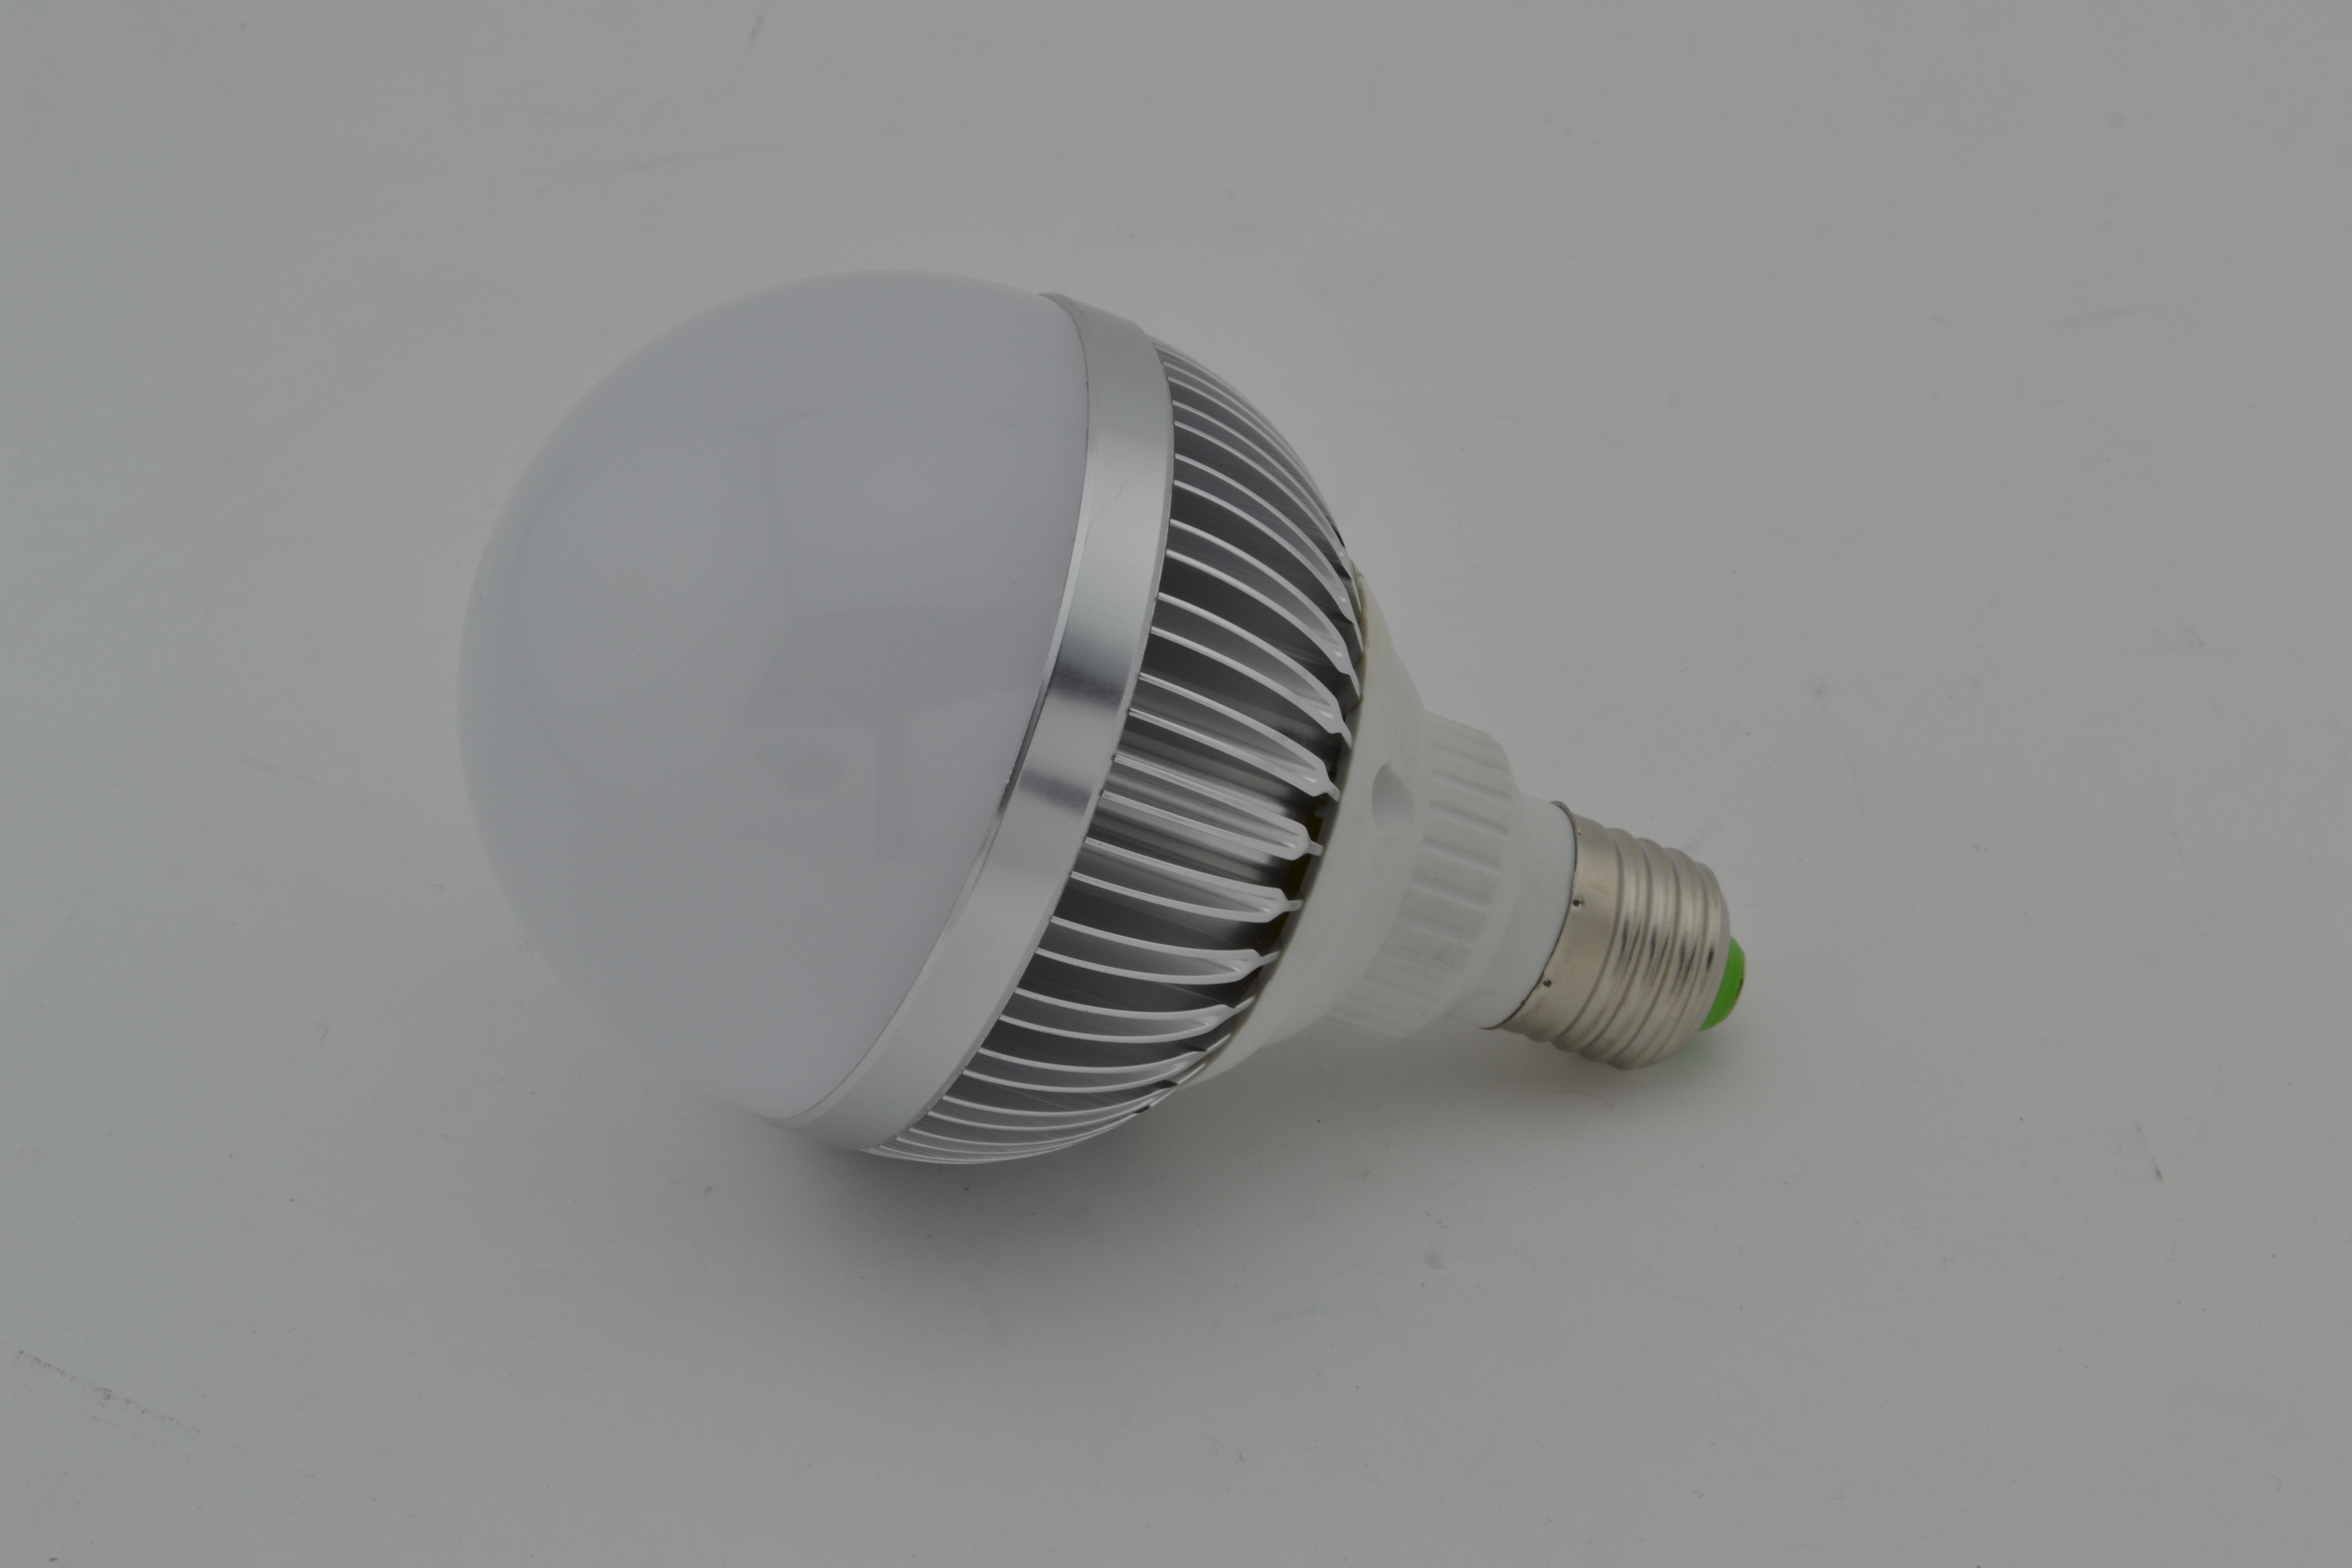 Newest 2 Years Warranty LED Bulb PC Cover Aluminum 5W E27